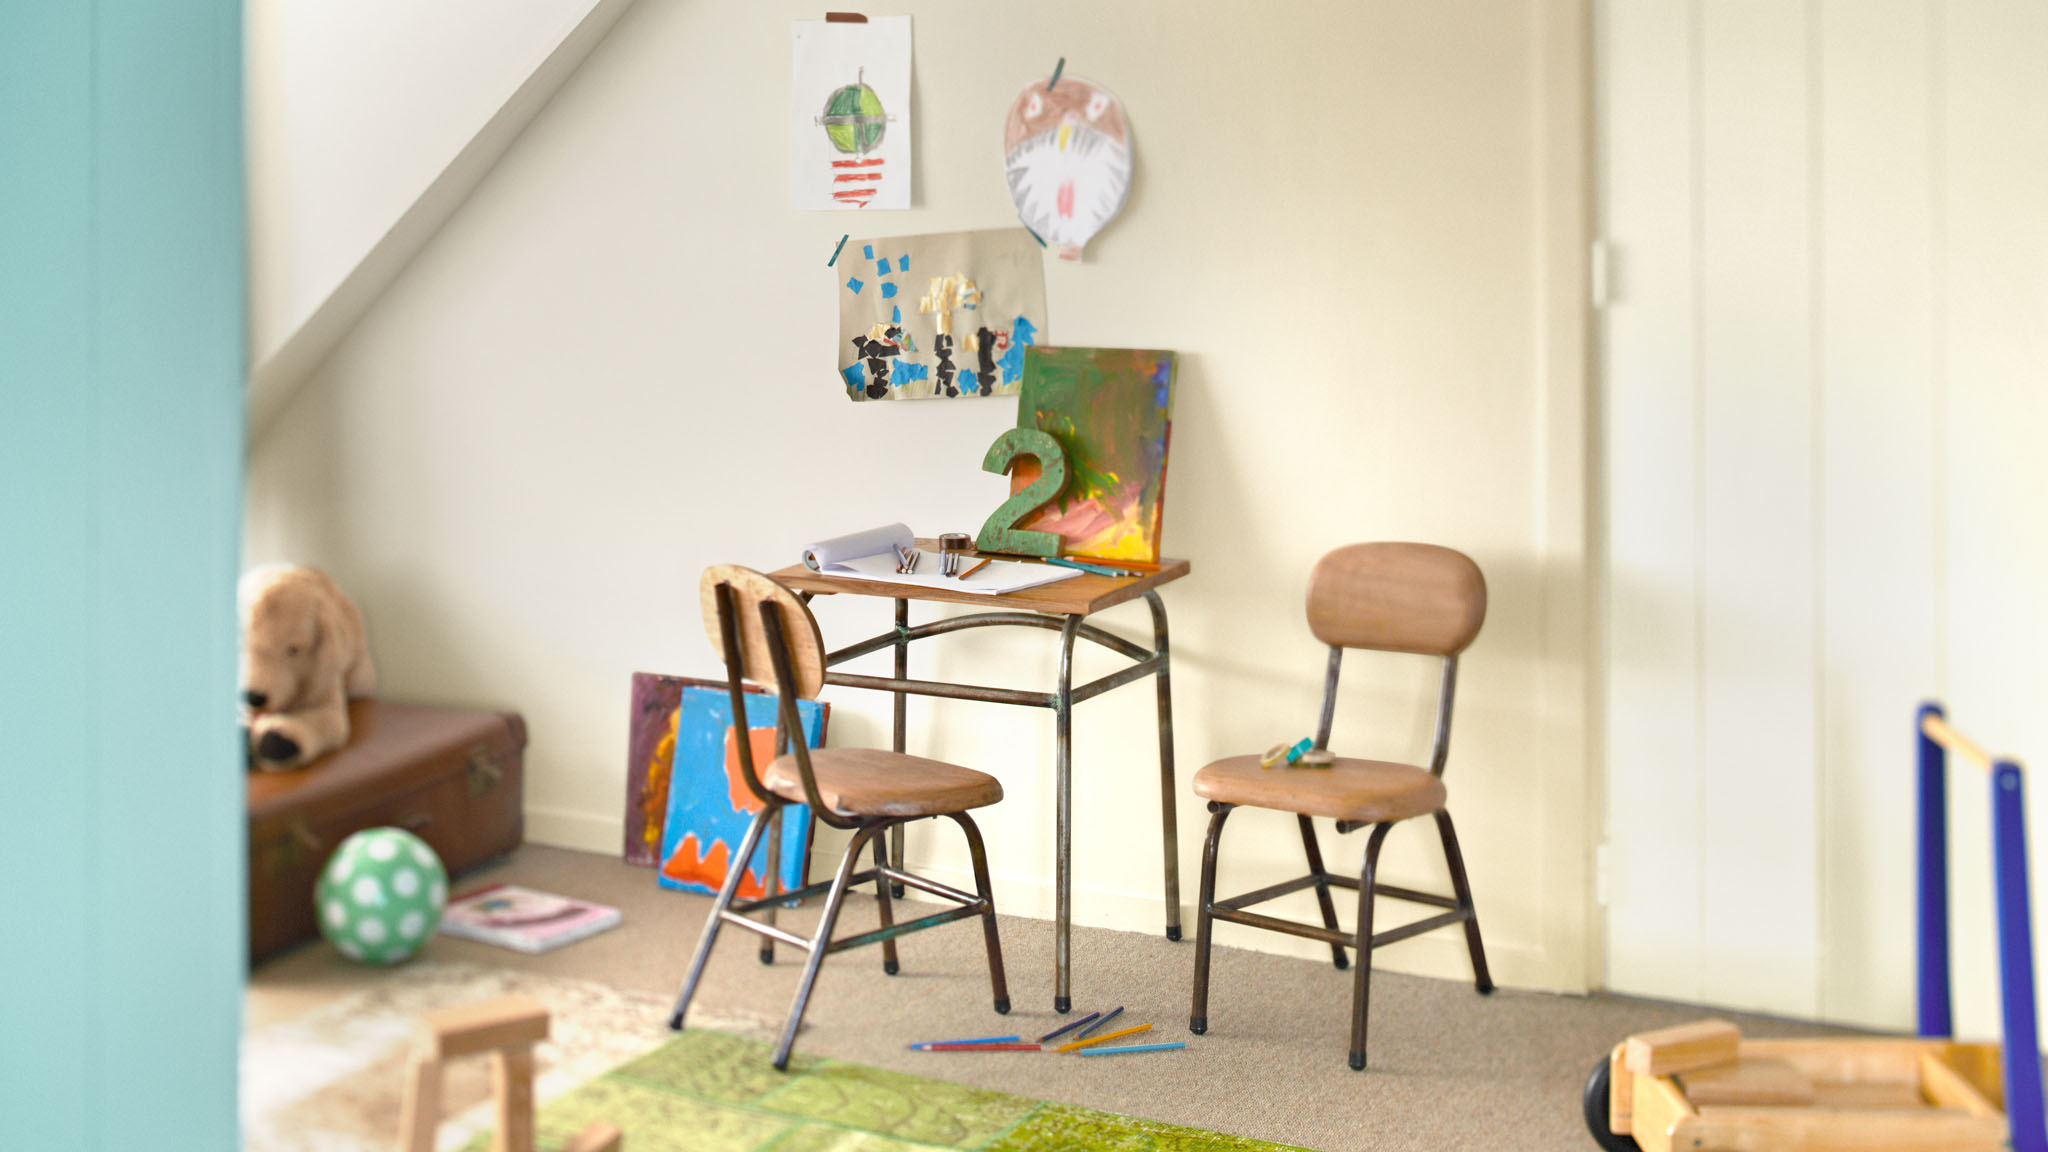 How to get the most out of a neutral colour scheme in your child's bedroom